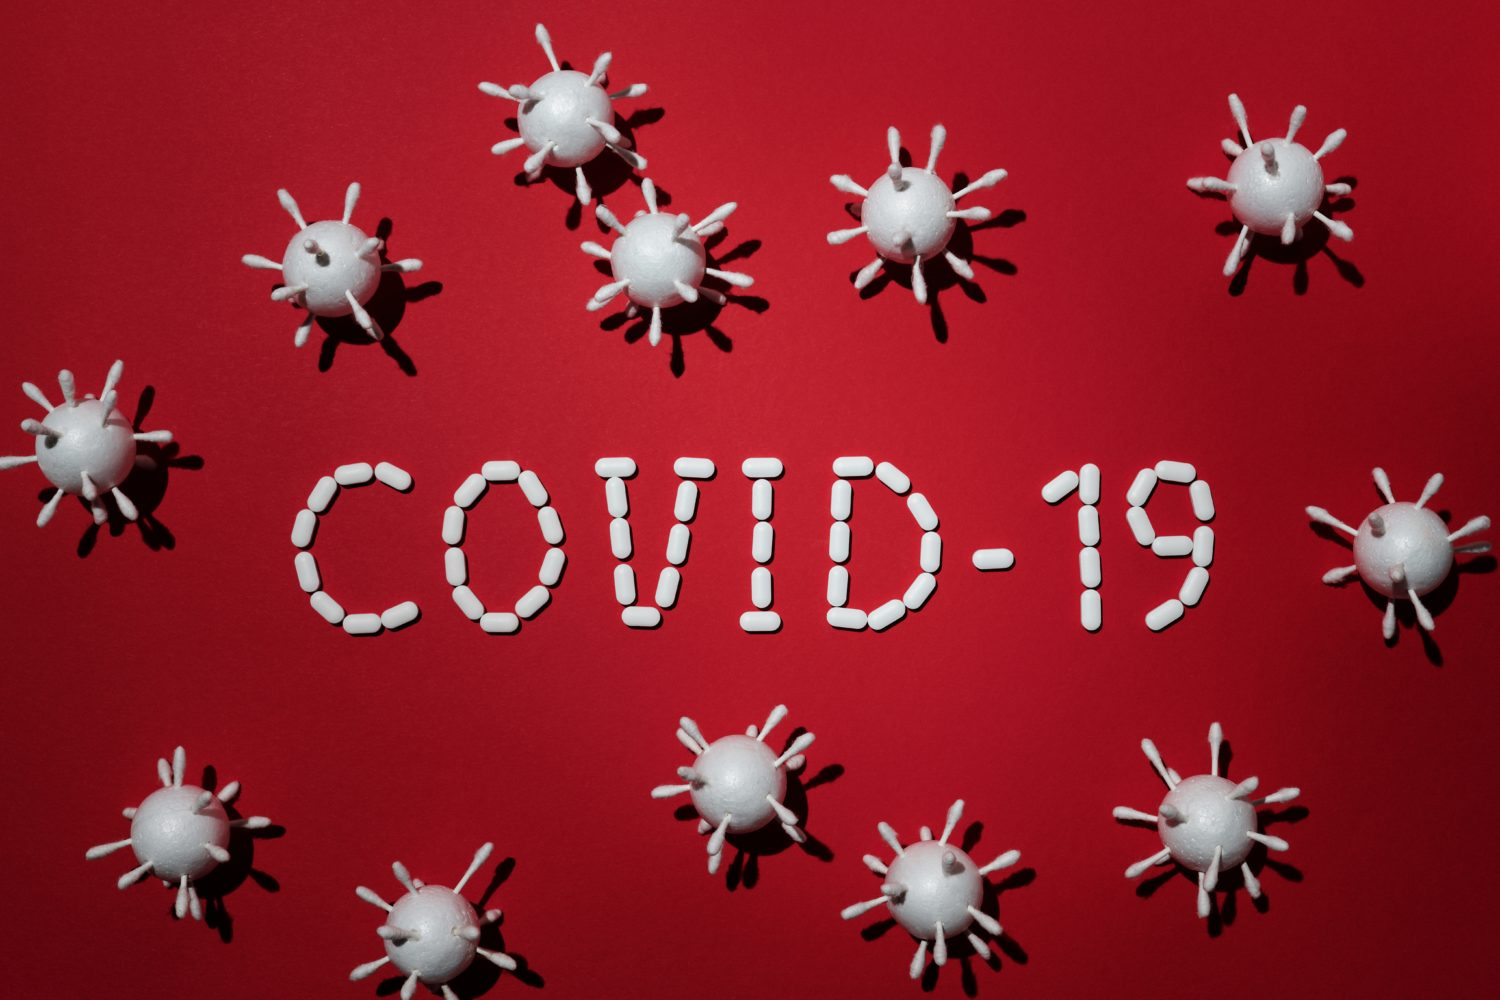 Coronavirus (COVID-19) – Entry And Return Of Foreign Nationals To The U.S.